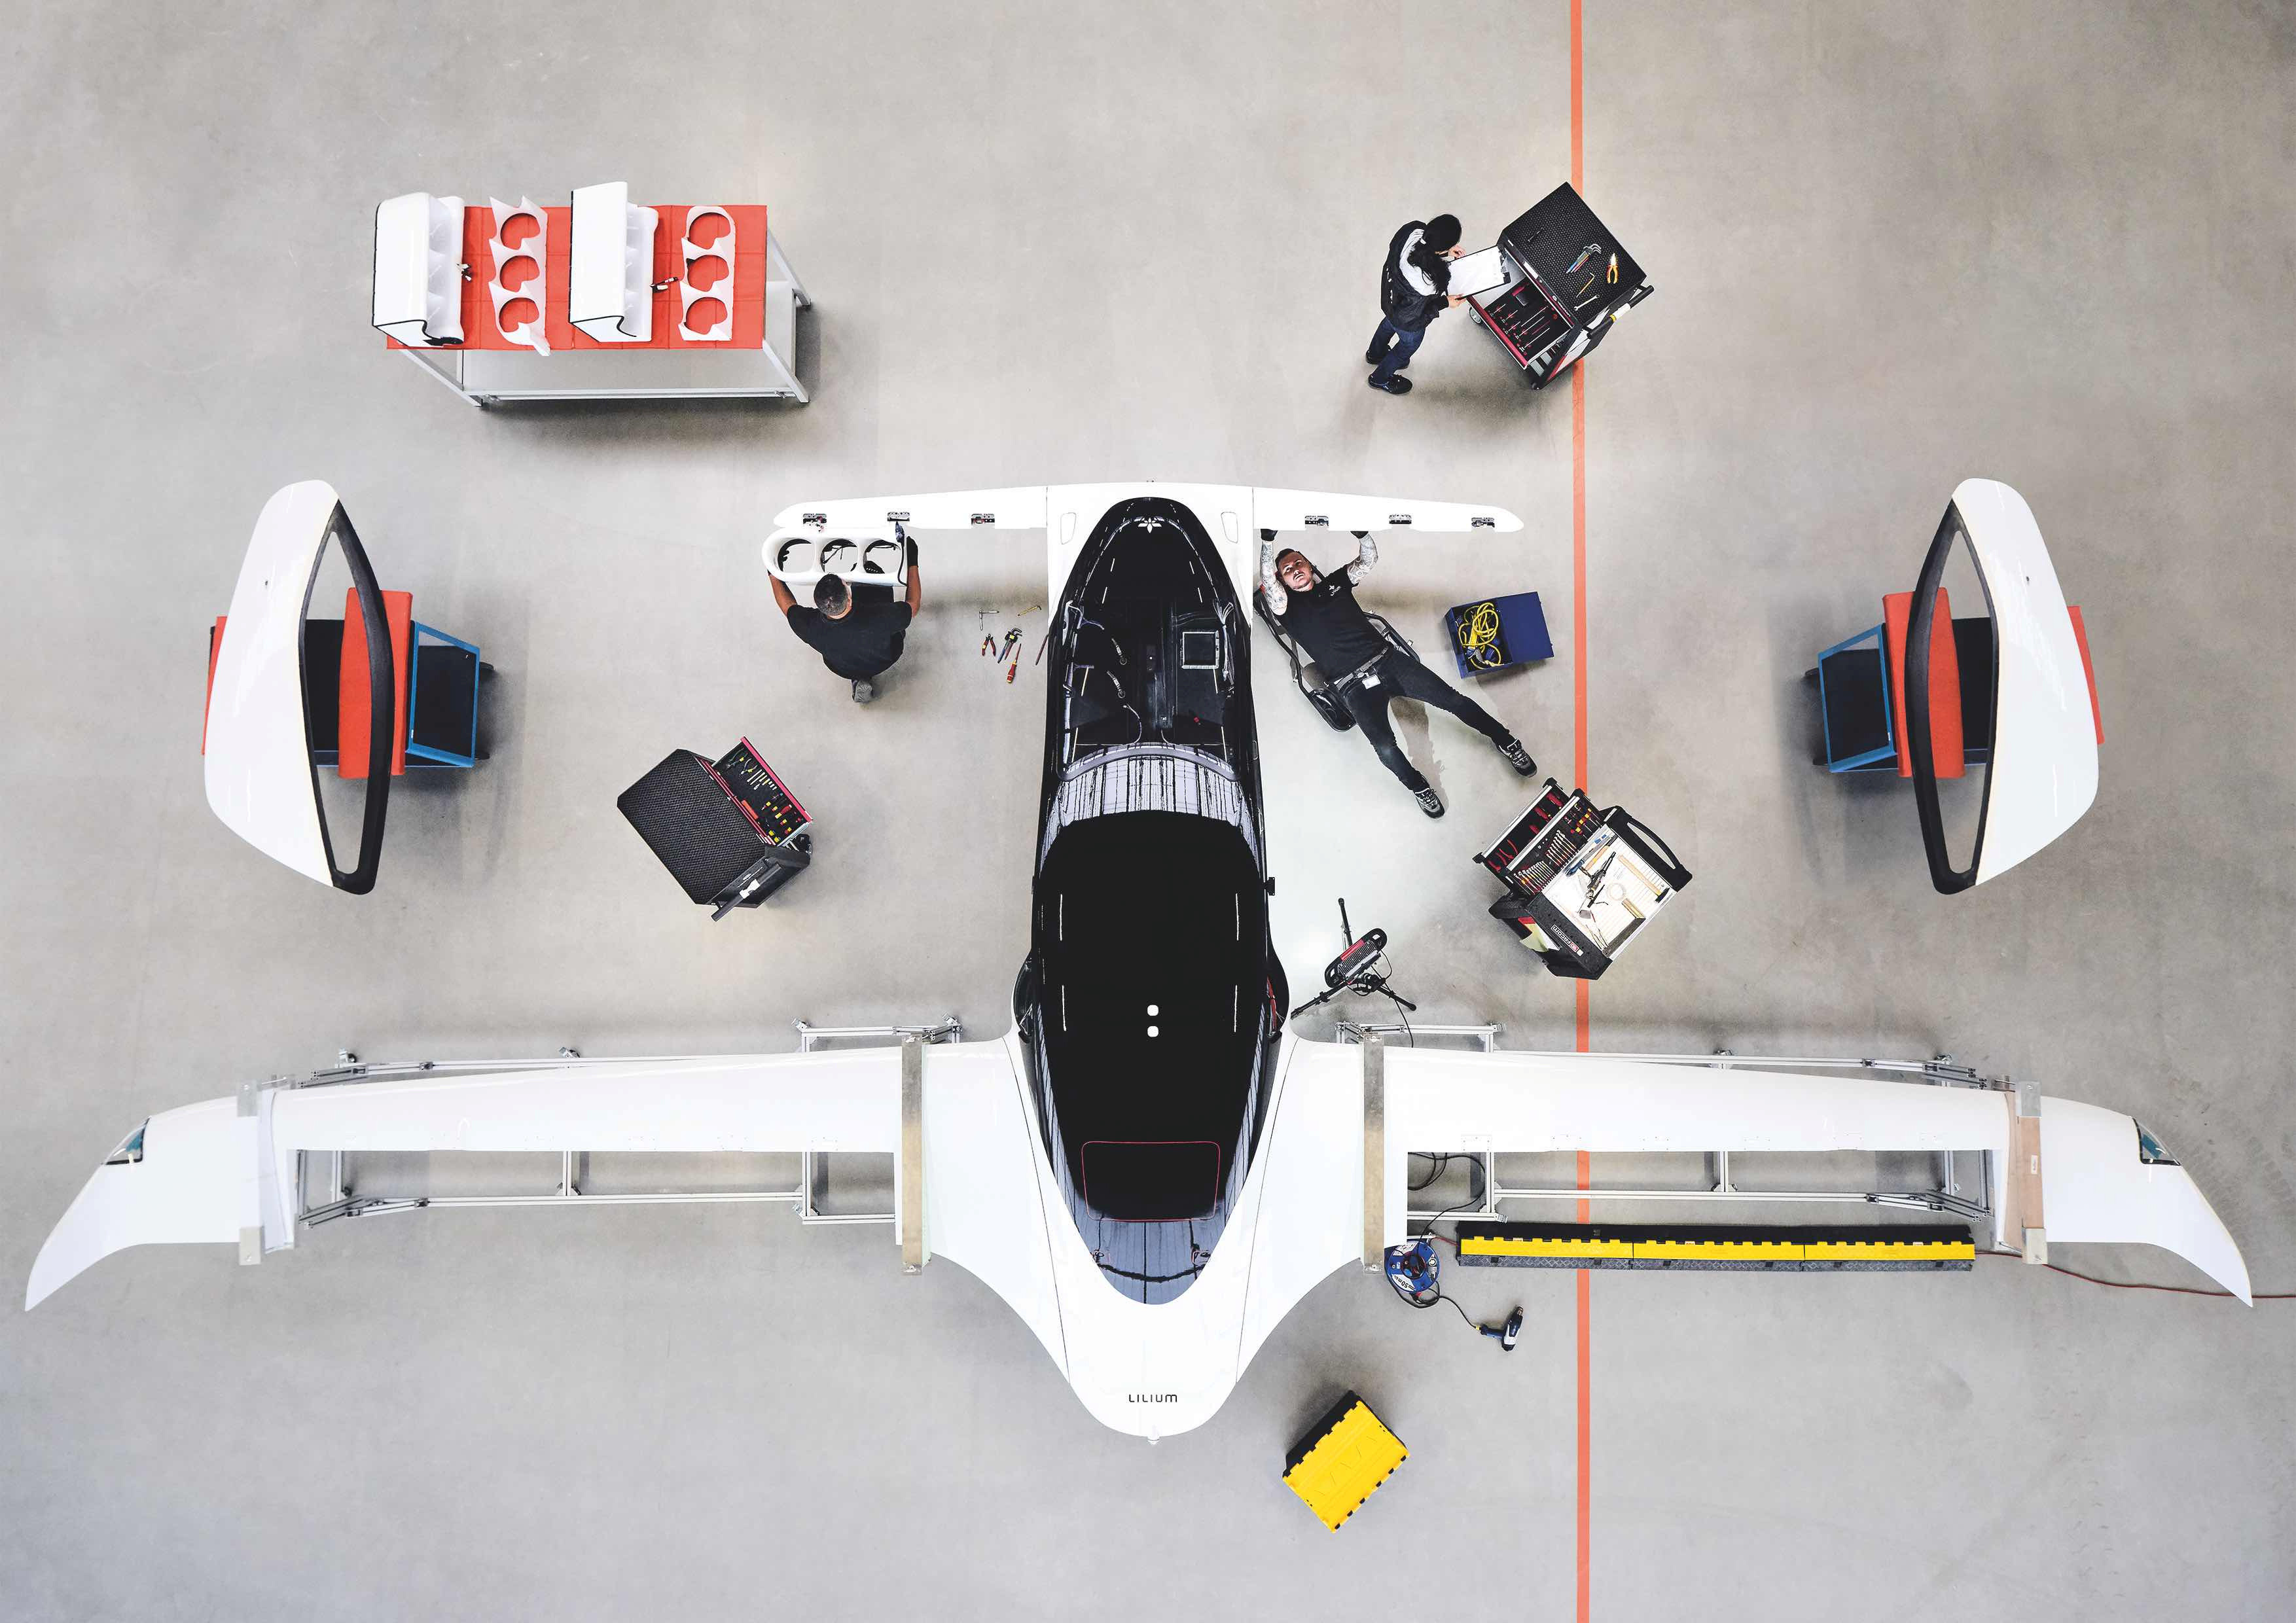 A handout picture from Munich flying taxi startup Lilium shows its five-seater prototype in Munich, Germany, October 10, 2019. Lilium says they achieved speeds of more than 100 km/h in test flights, as it announces investments to build hundreds of the aircraft with a view to commercial launch in 2025. Picture taken October 10, 2019.